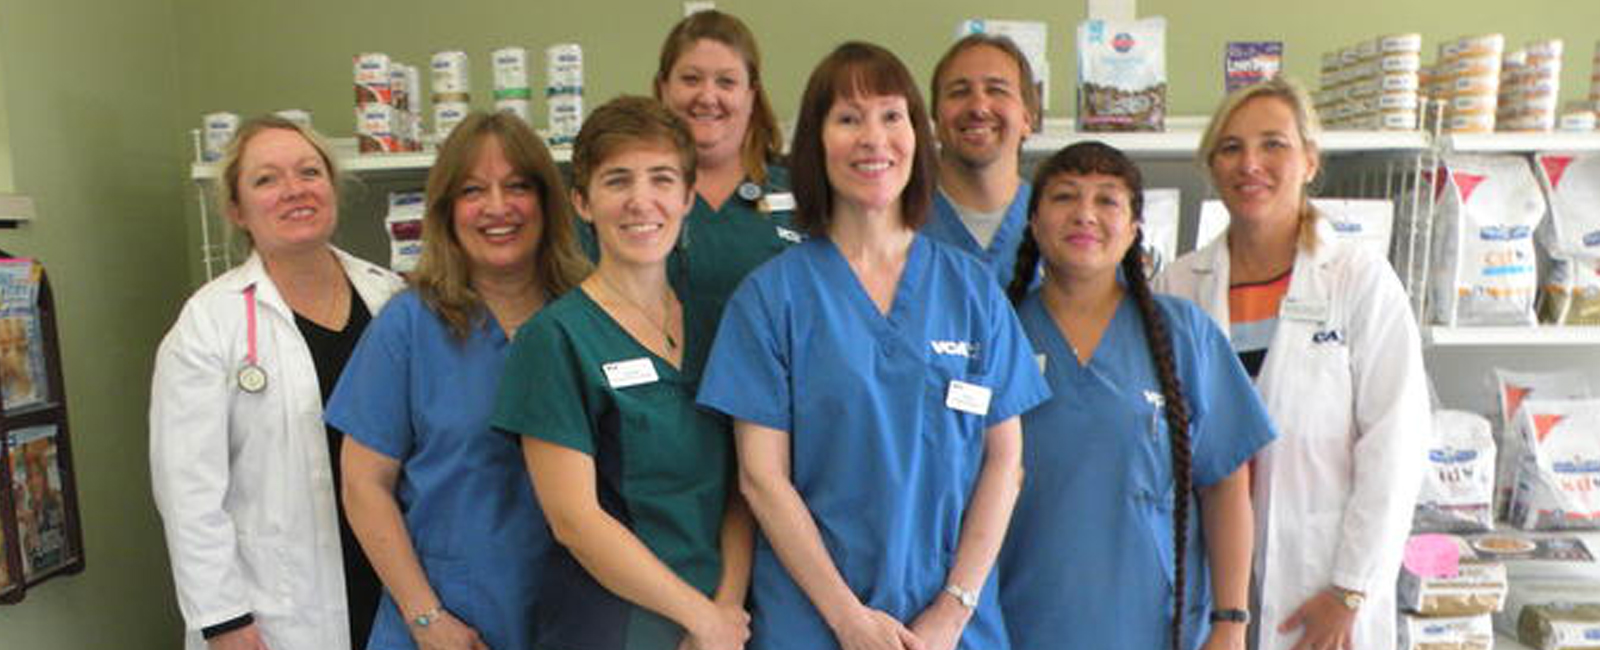 Homepage Team Picture of  VCA College Park Ana Brook Animal Hospital